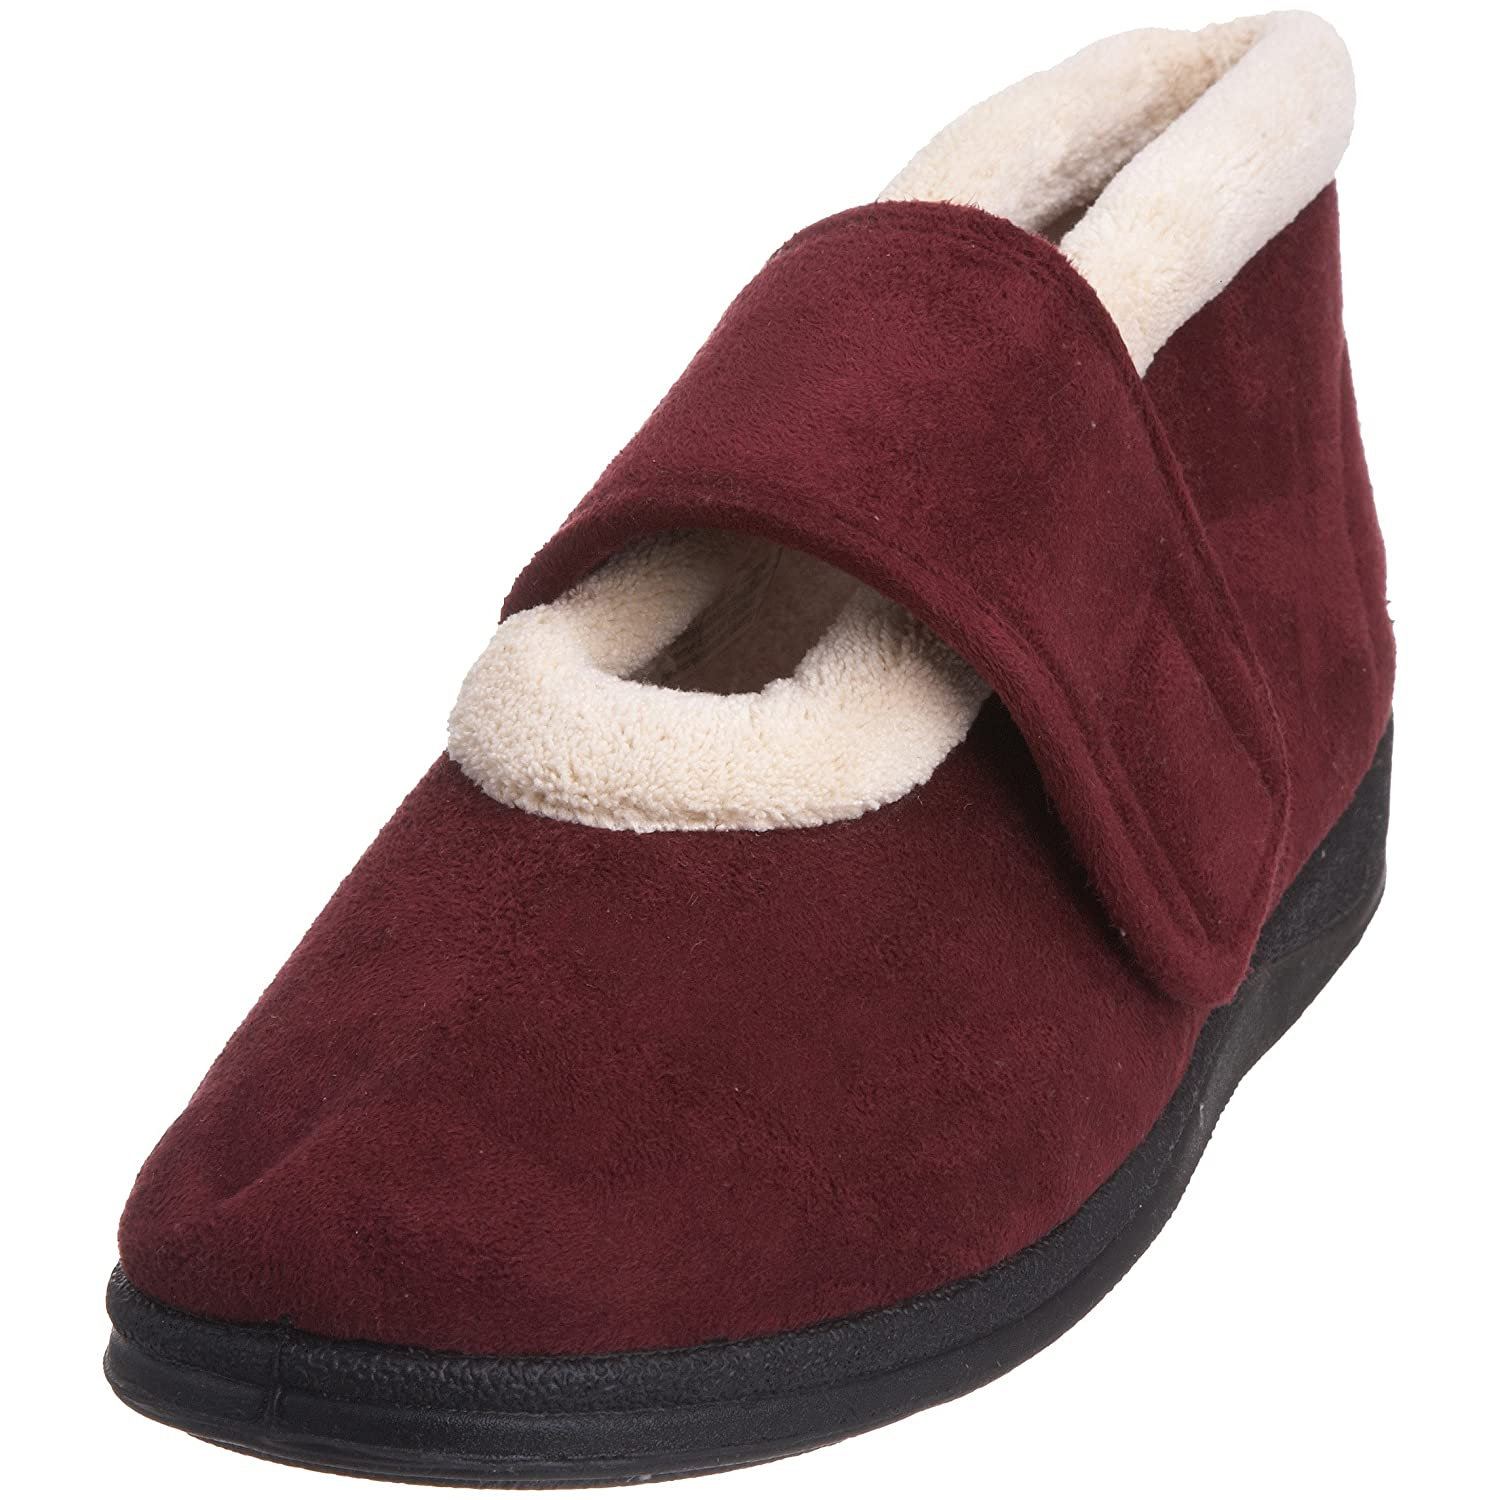 Padders Silent, Padders Chaussons (Burgundy) femme rouge Chaussons (Burgundy) f868a3a - automatisms.space